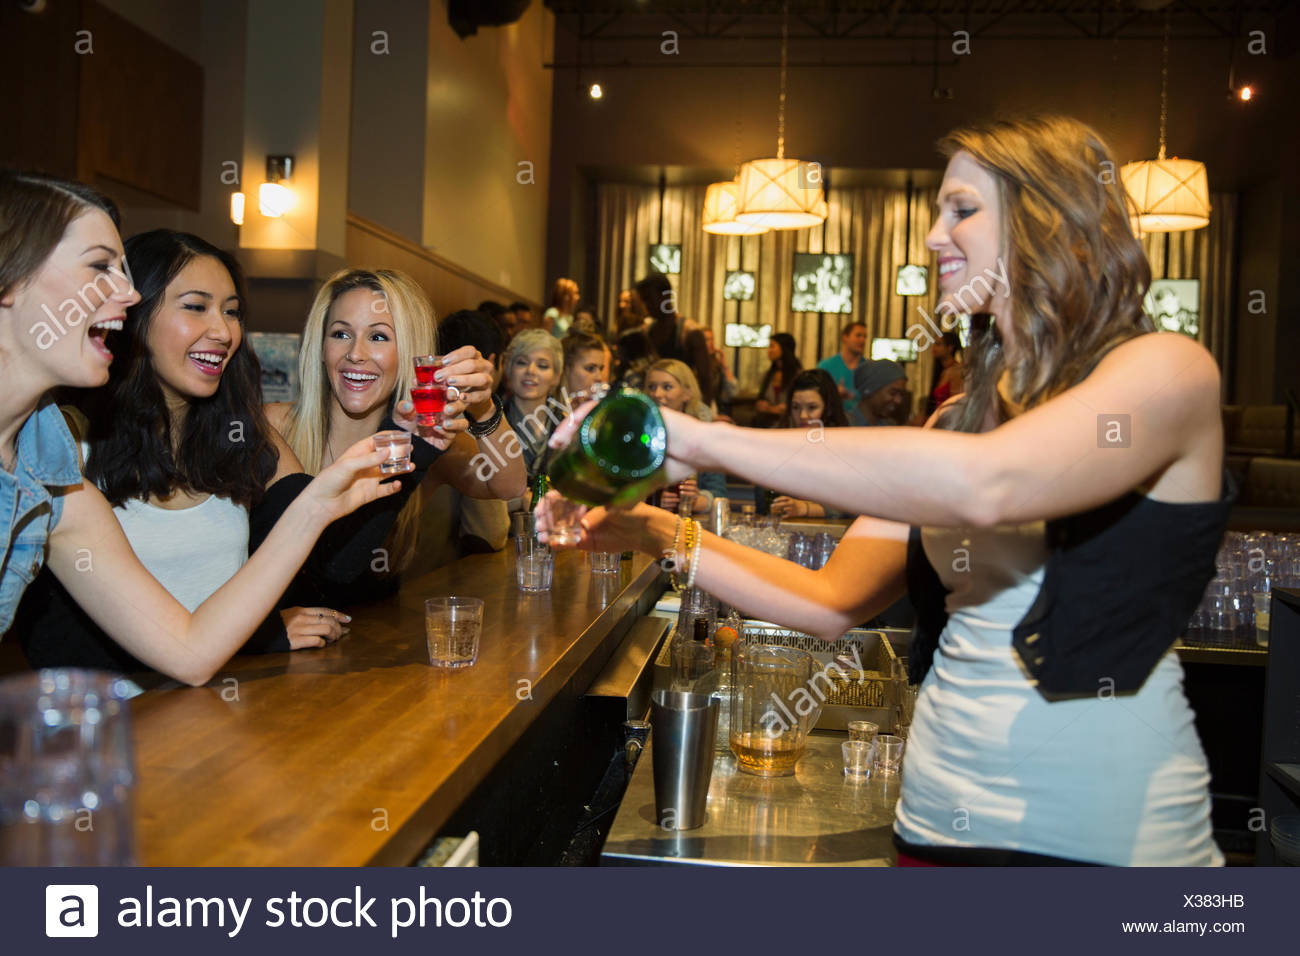 Bartender pouring shots for women at bar - Stock Image